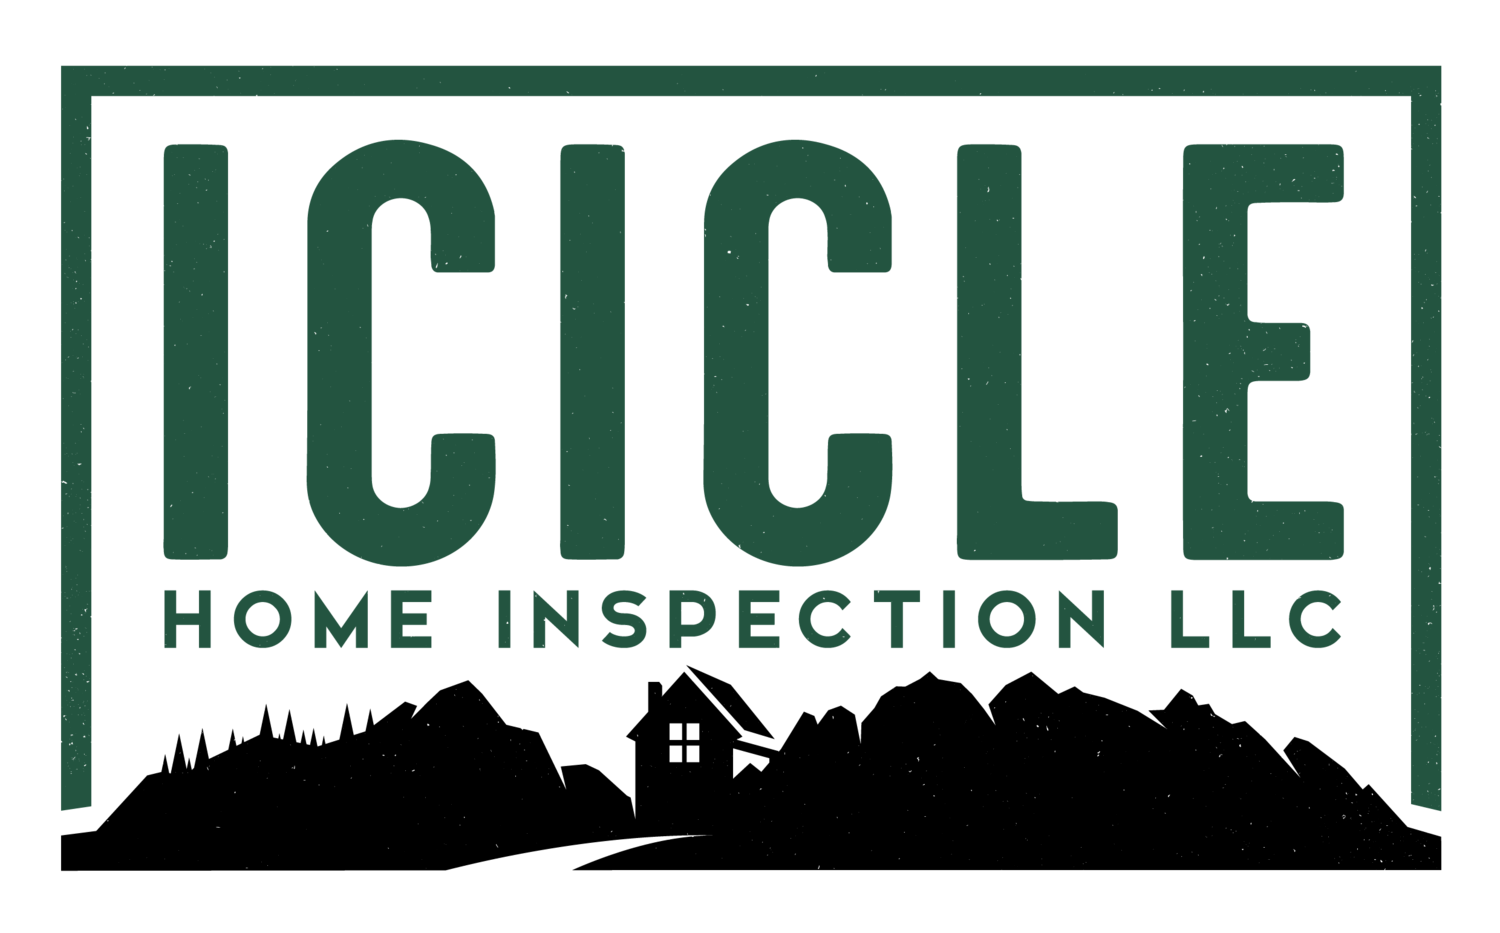 ICICLE HOME INSPECTION